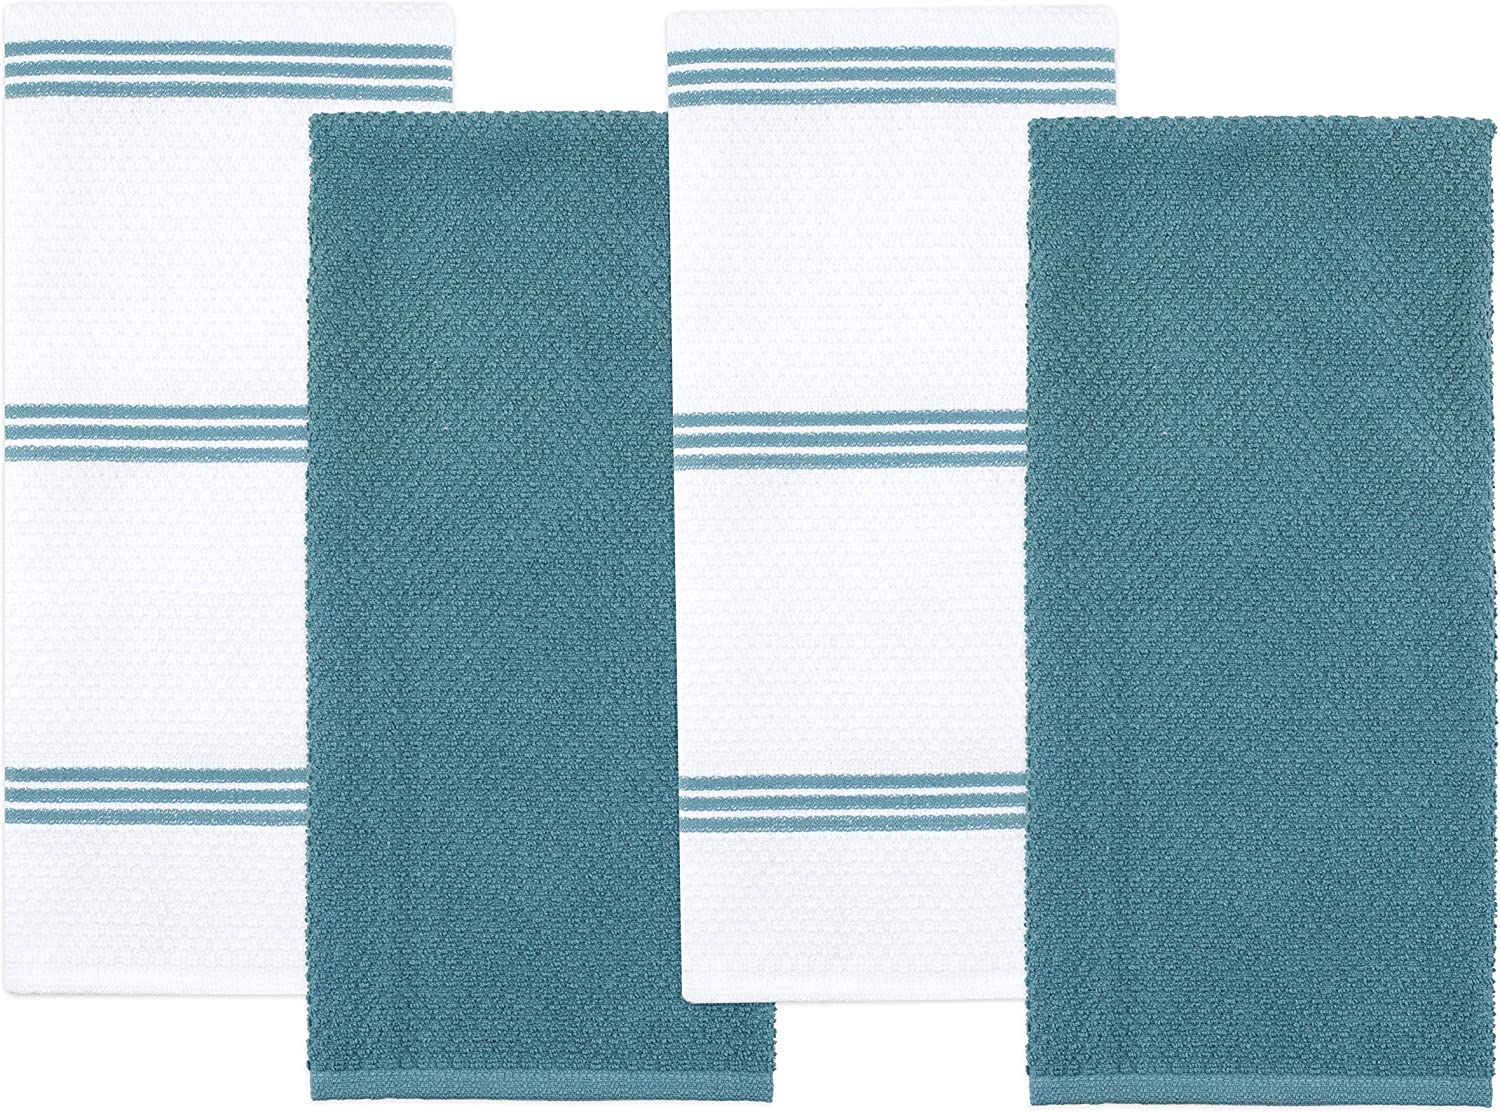 Columbus Mall Sticky Toffee Cotton Terry Kitchen Dish 5 popular Towel x Pack 28 1 in 4